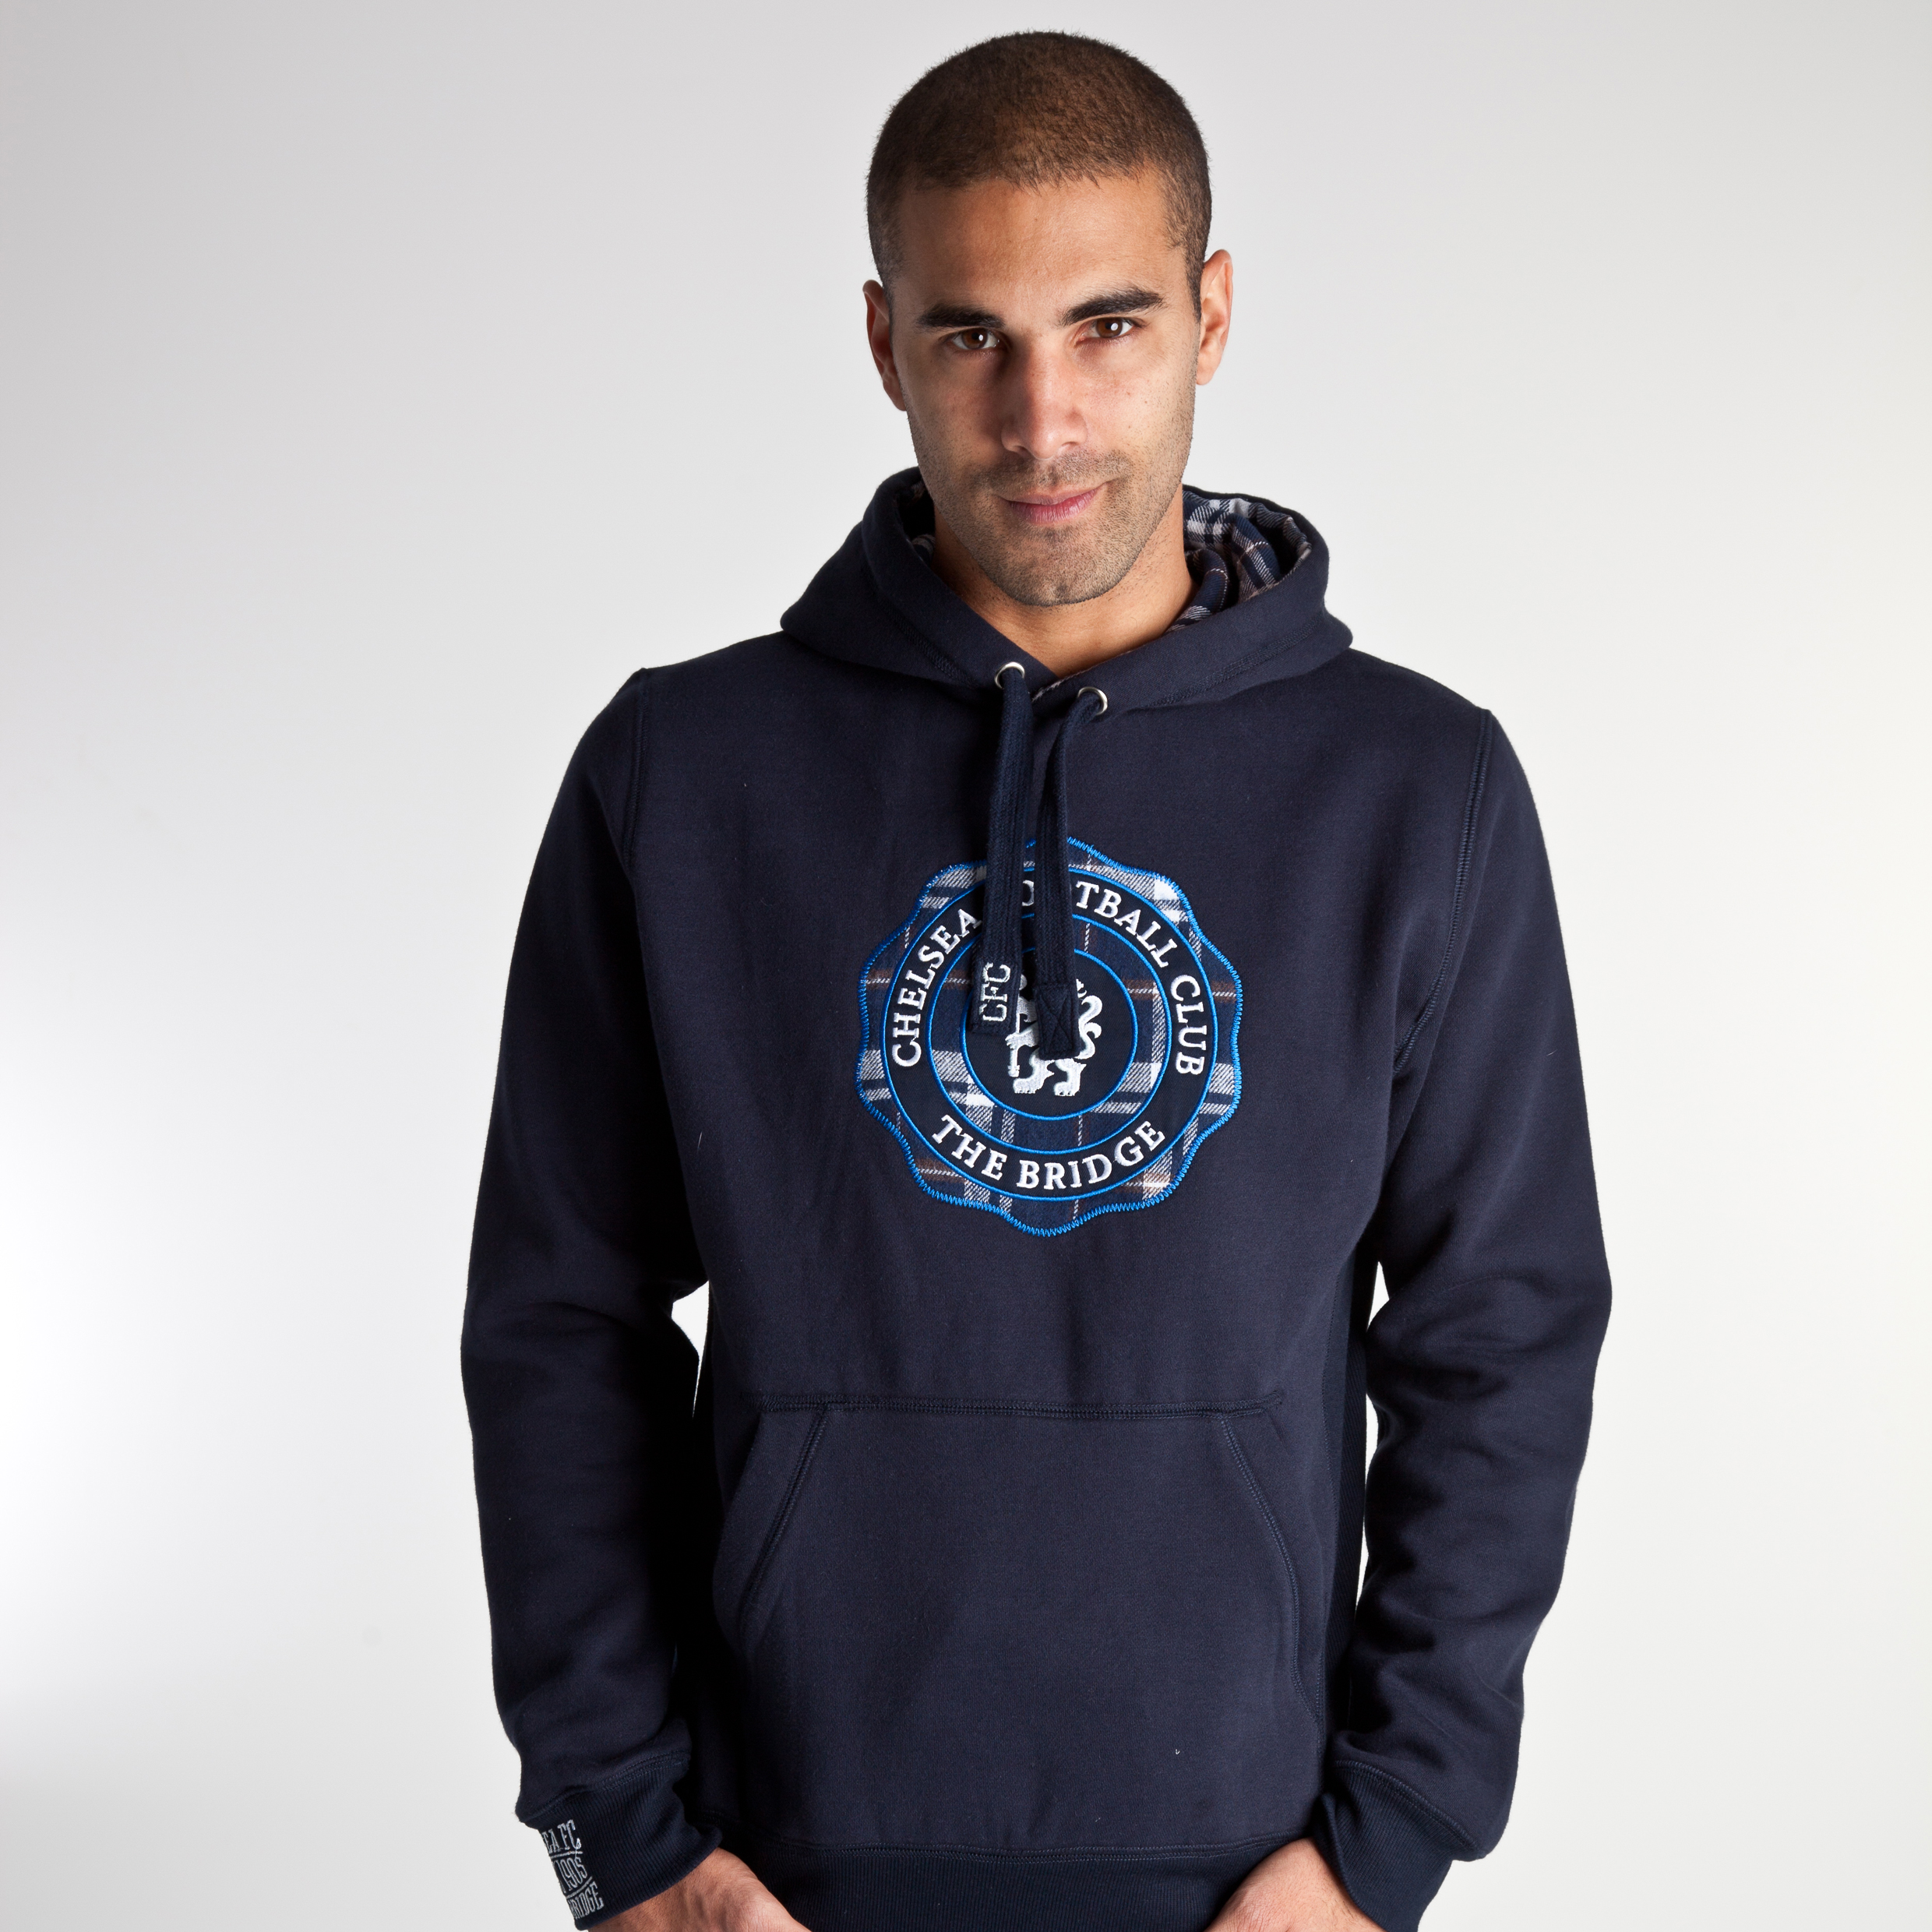 Chelsea 1905 Hoody - Navy/Light Grey